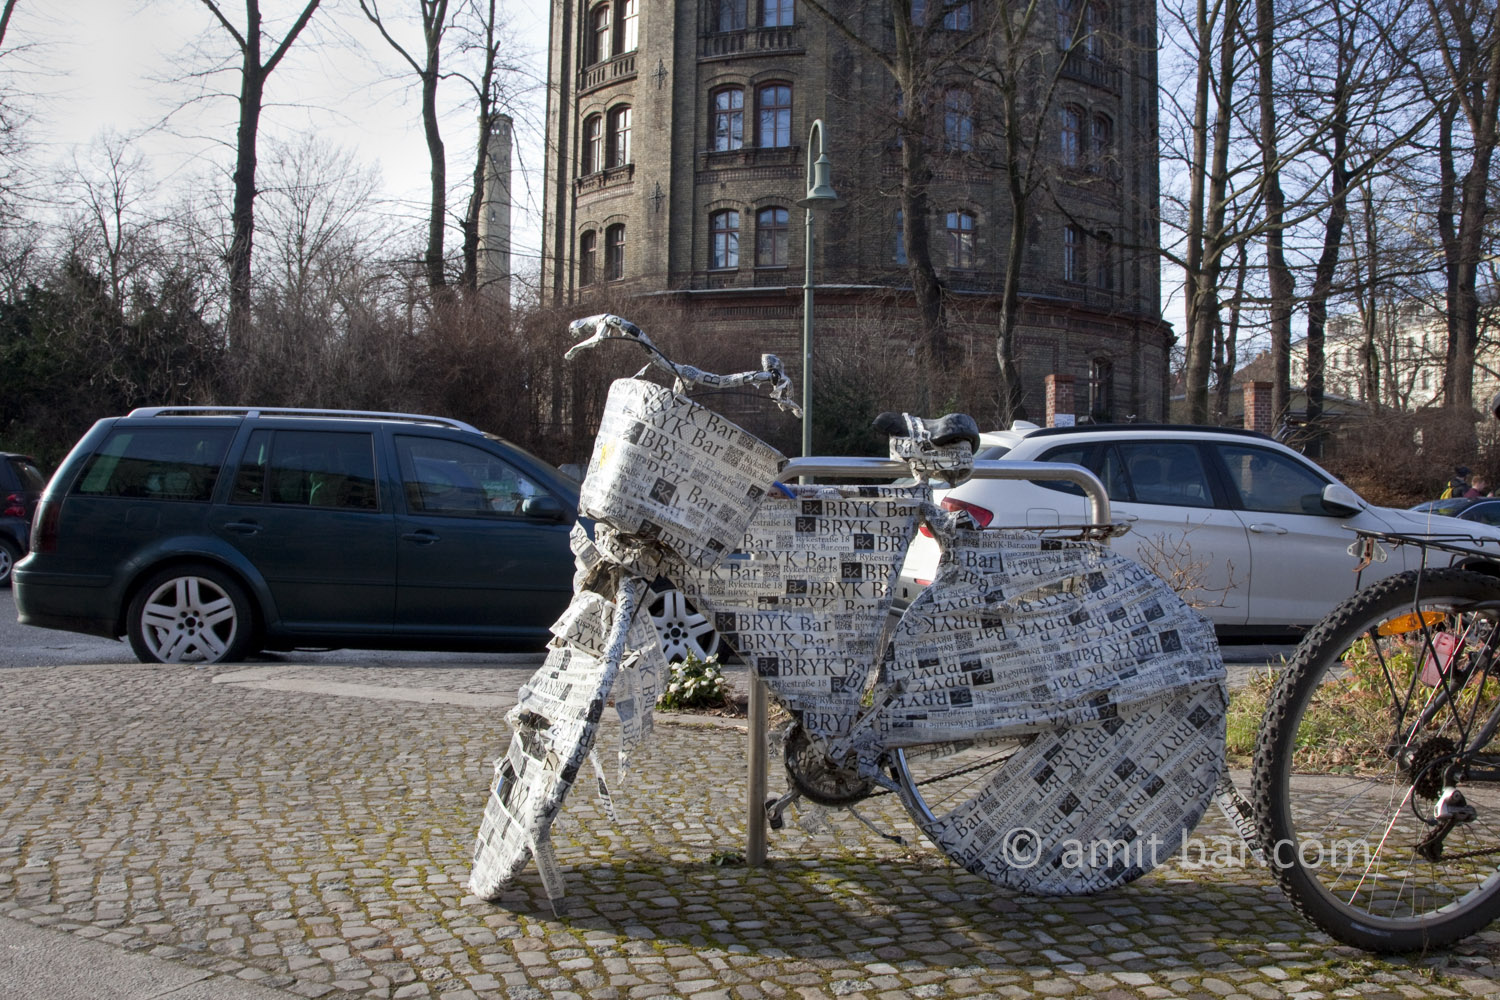 Berlin: Wrapped Bike are parked on street.